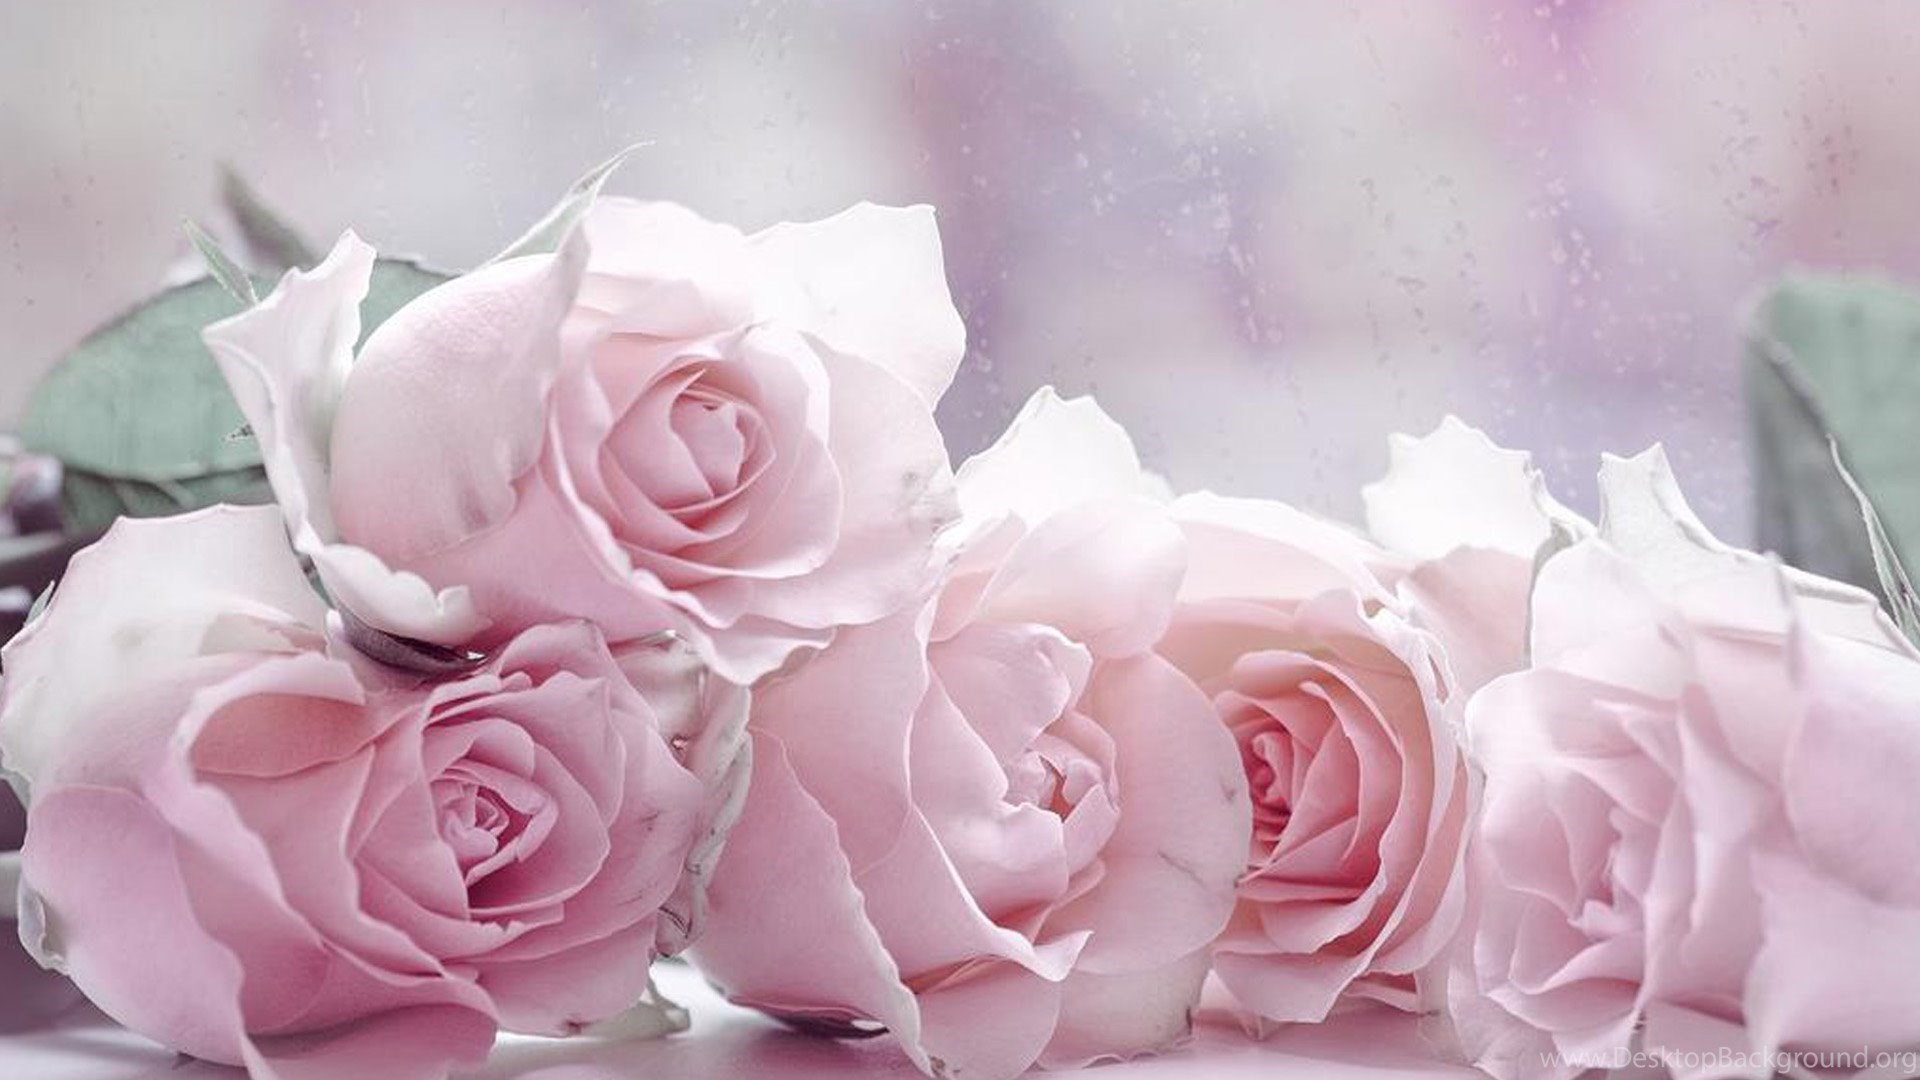 Wall Paper Wide Pink Rose Colours Soft Nature Flower: The Four Pastel Roses Wallpapers, Rose Flower Images, Rose